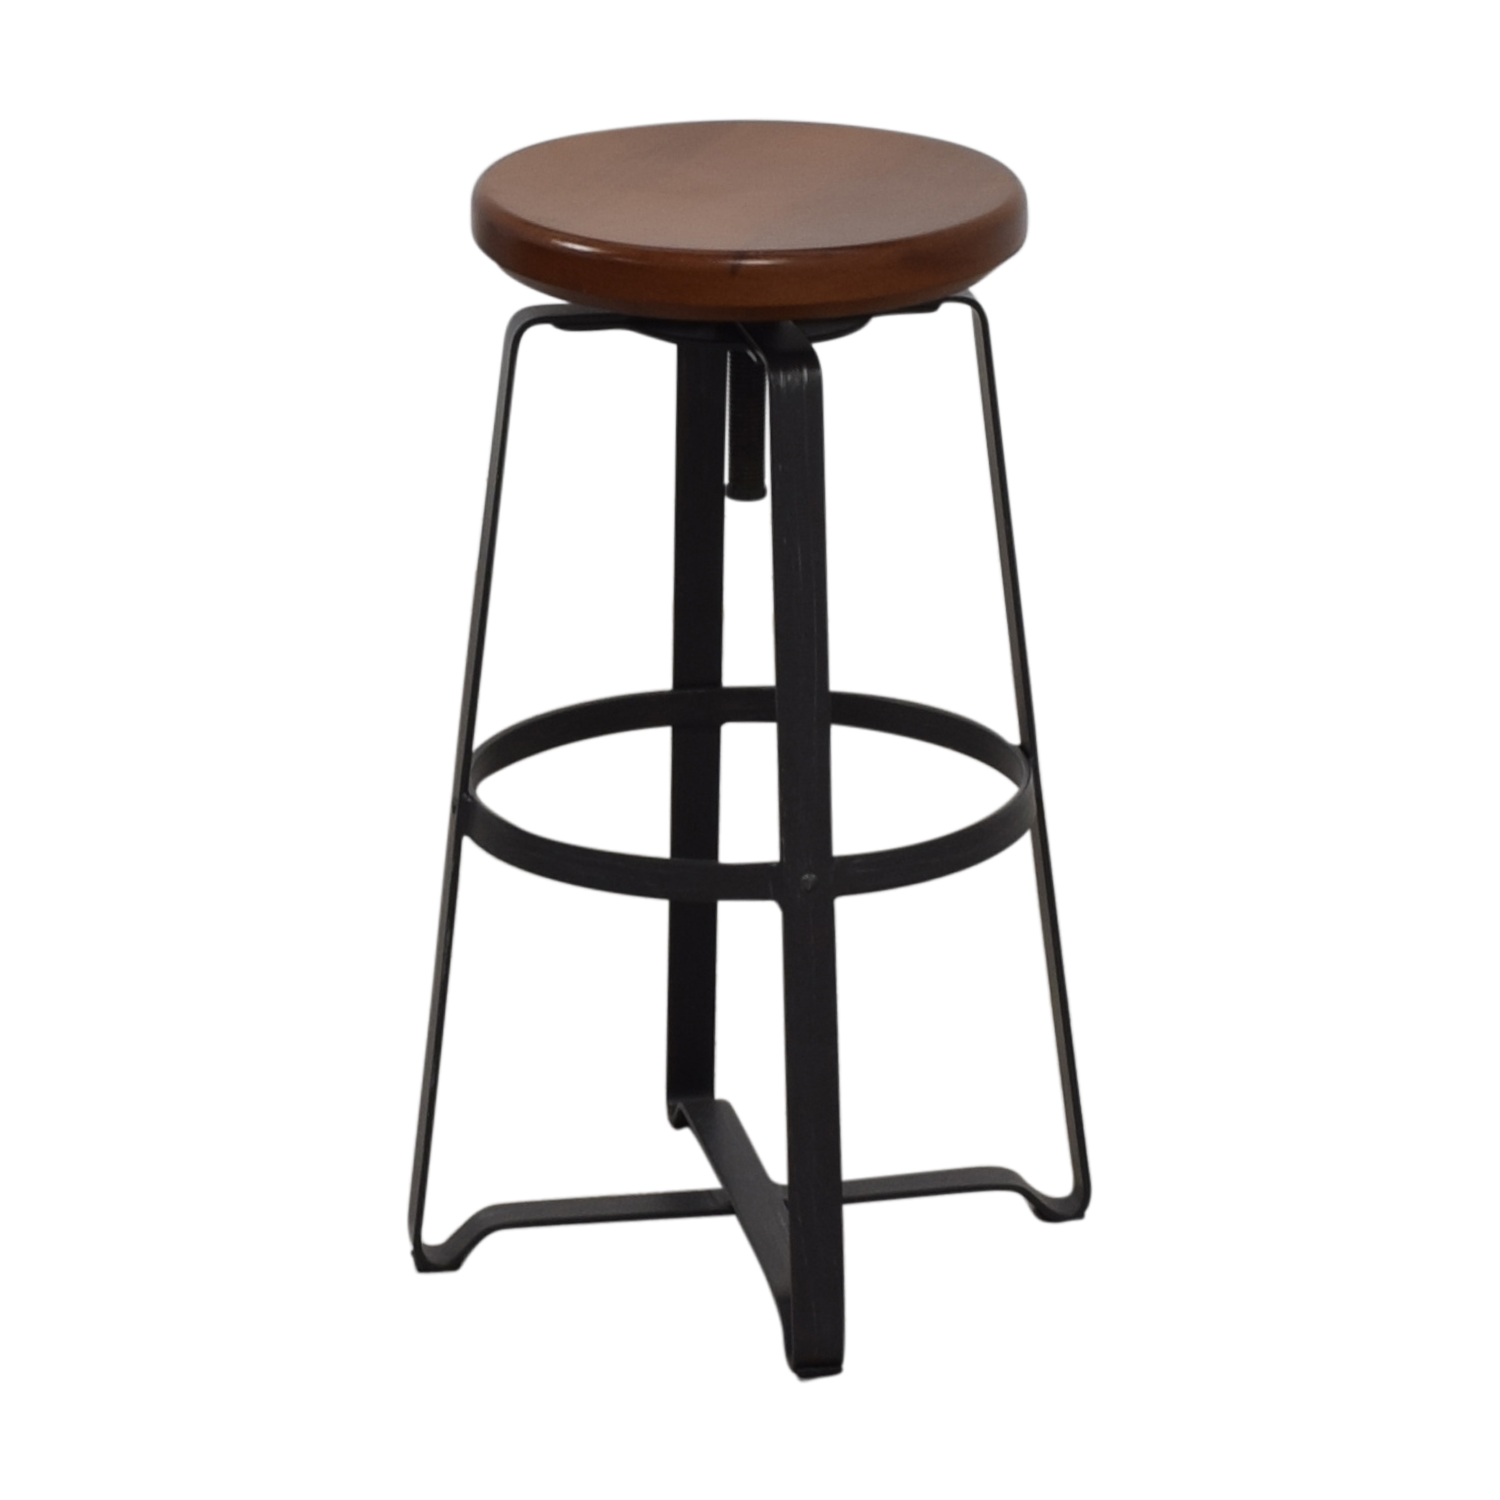 West Elm West Elm Adjustable Industrial Stool Chairs